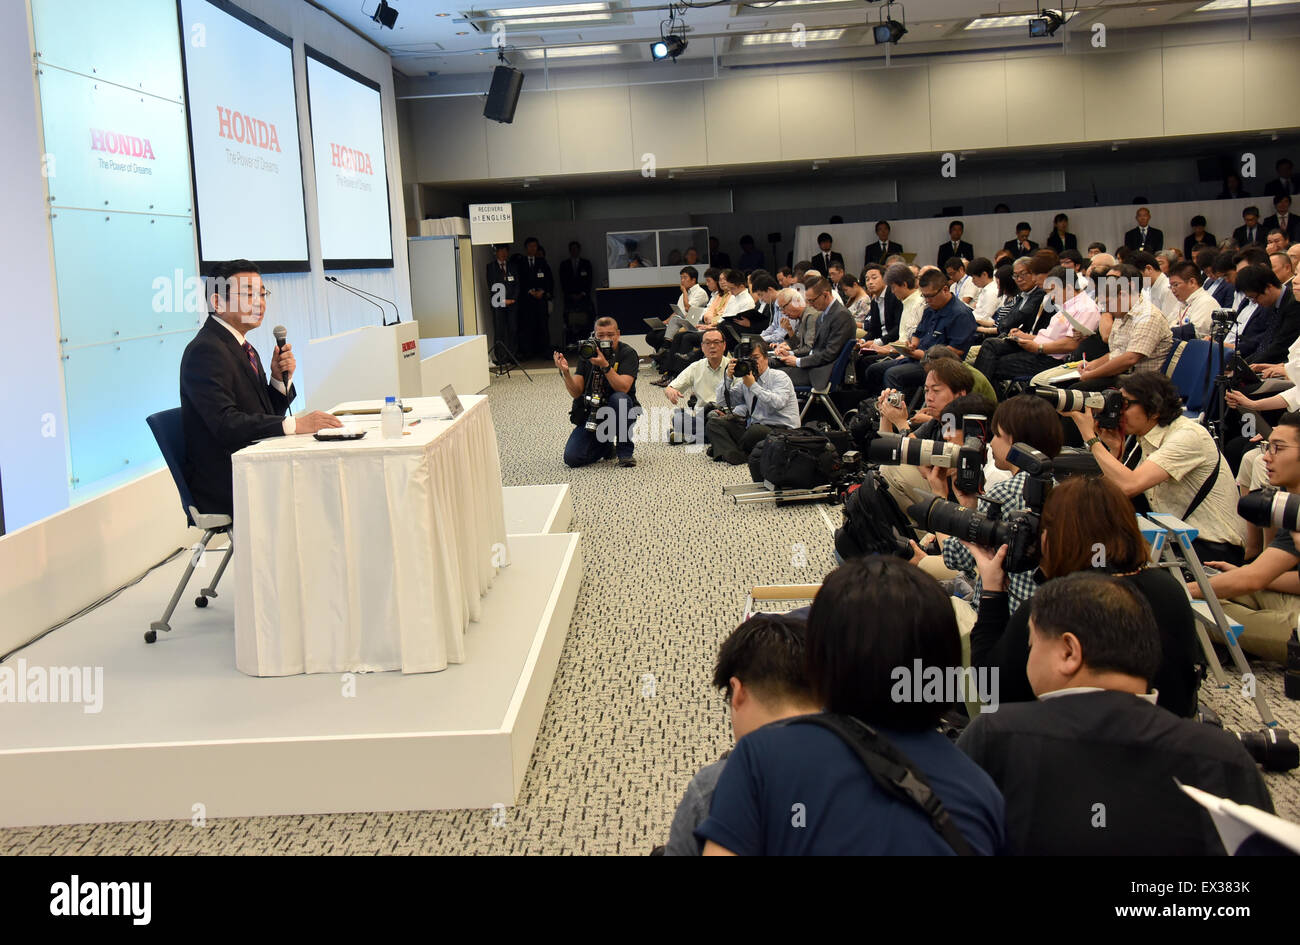 Tokyo, Japan. 6th July, 2015. Takahiro Hachigo, new president and chief executive officer of Honda Motor Co., holds Stock Photo